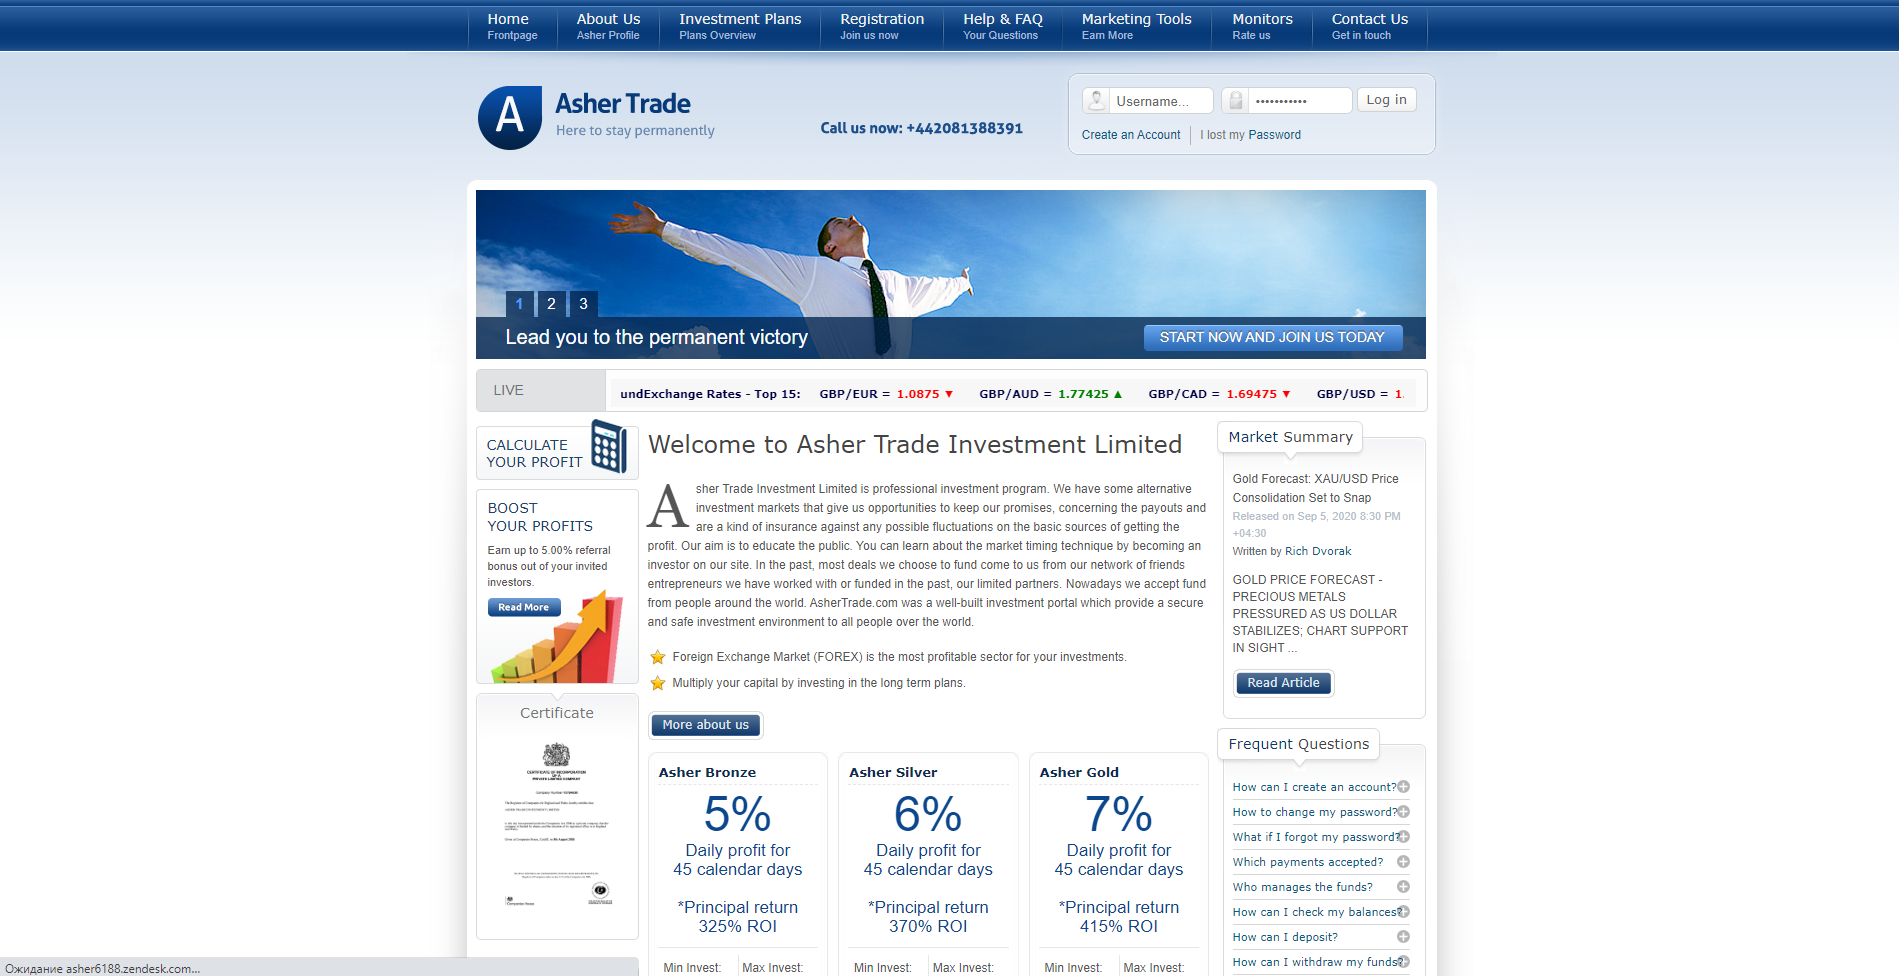 AsherTrade - ashertrade.com